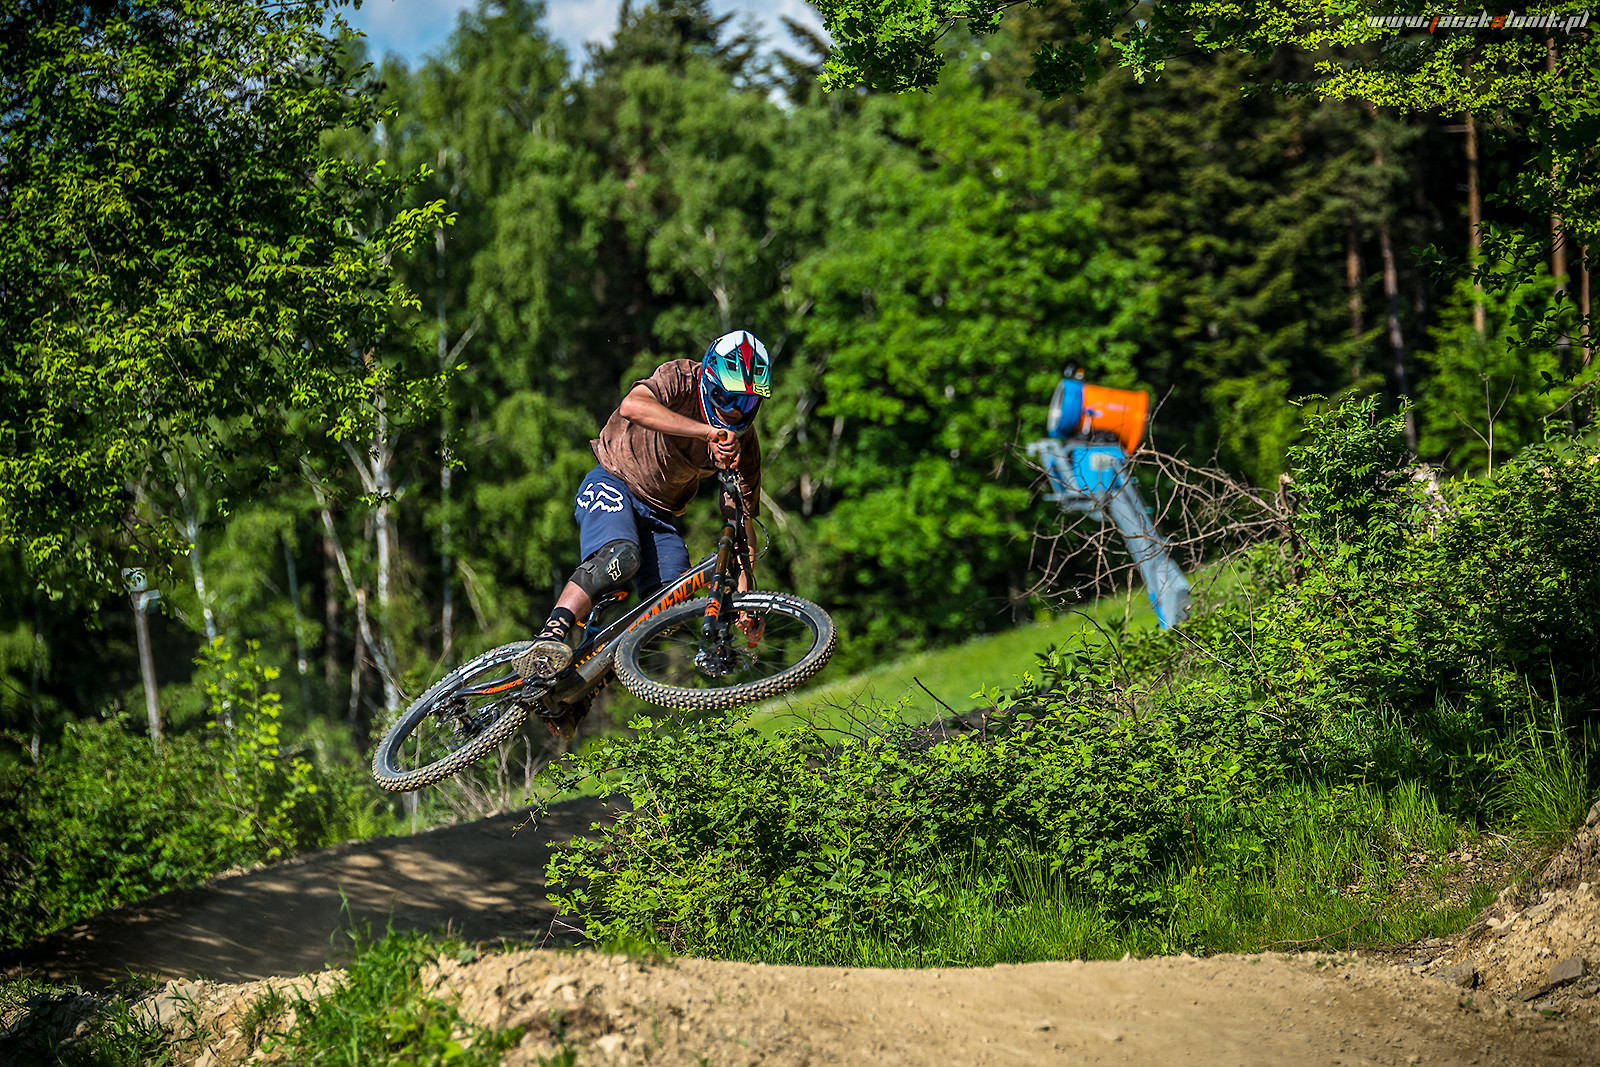 Test ride with on Commencal Supreme29 with Downhill24.bike - JacekSlonik - Mountain Biking Pictures - Vital MTB